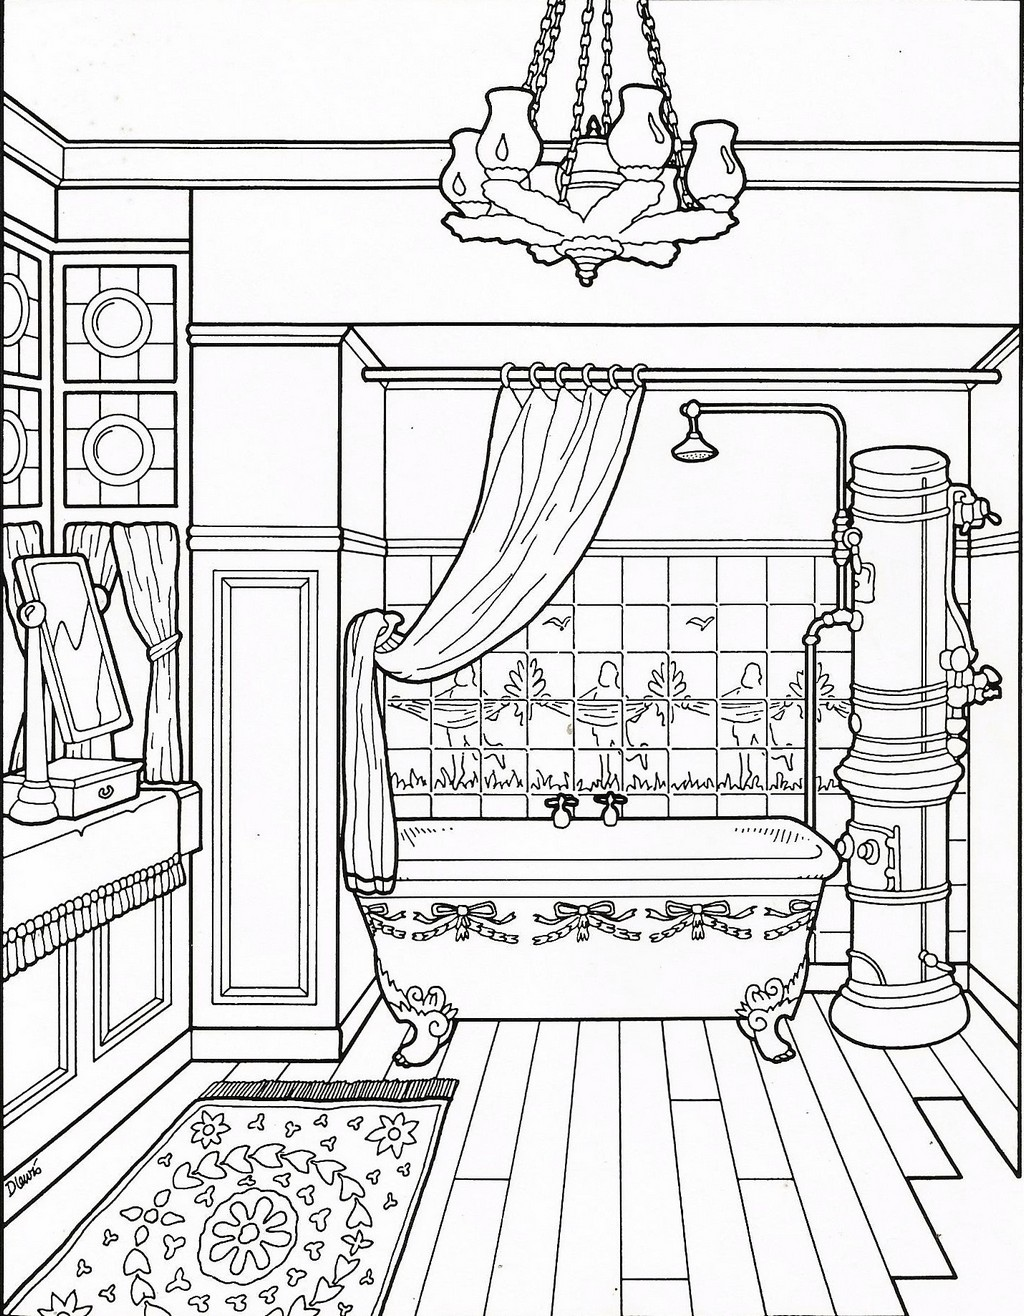 clean bathroom coloring sheet